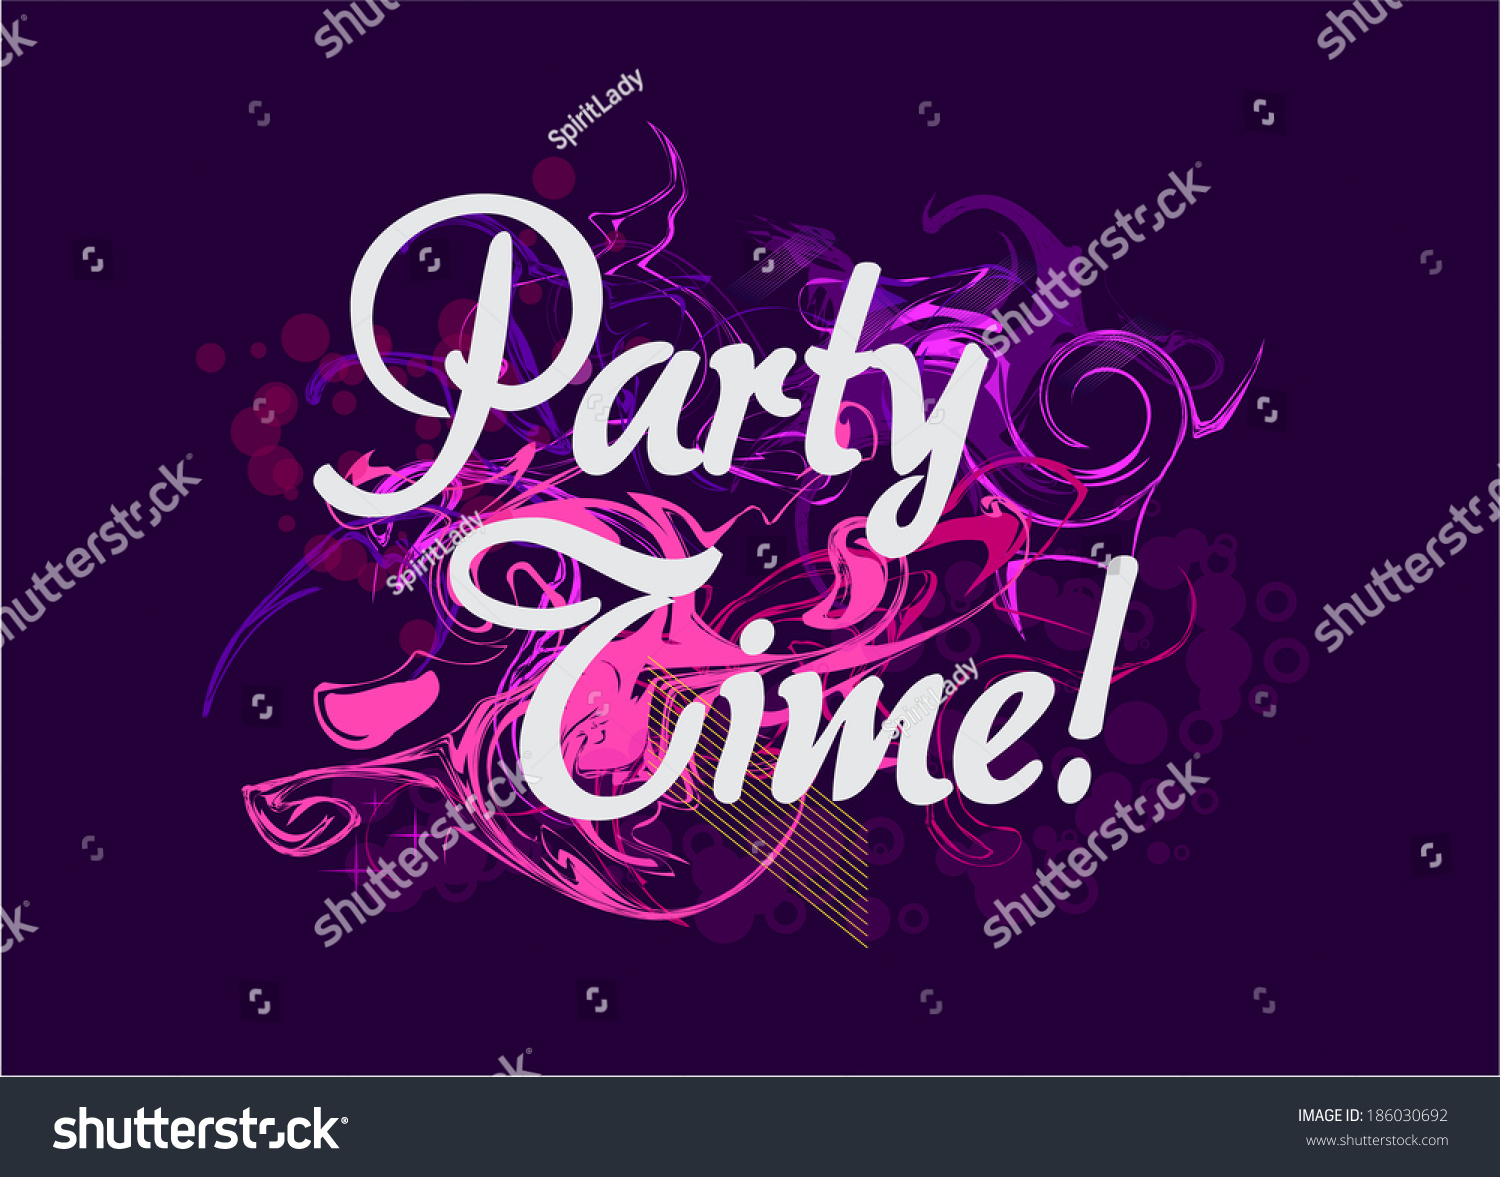 Party Time Background Vector Music Poster Stock Vector ...